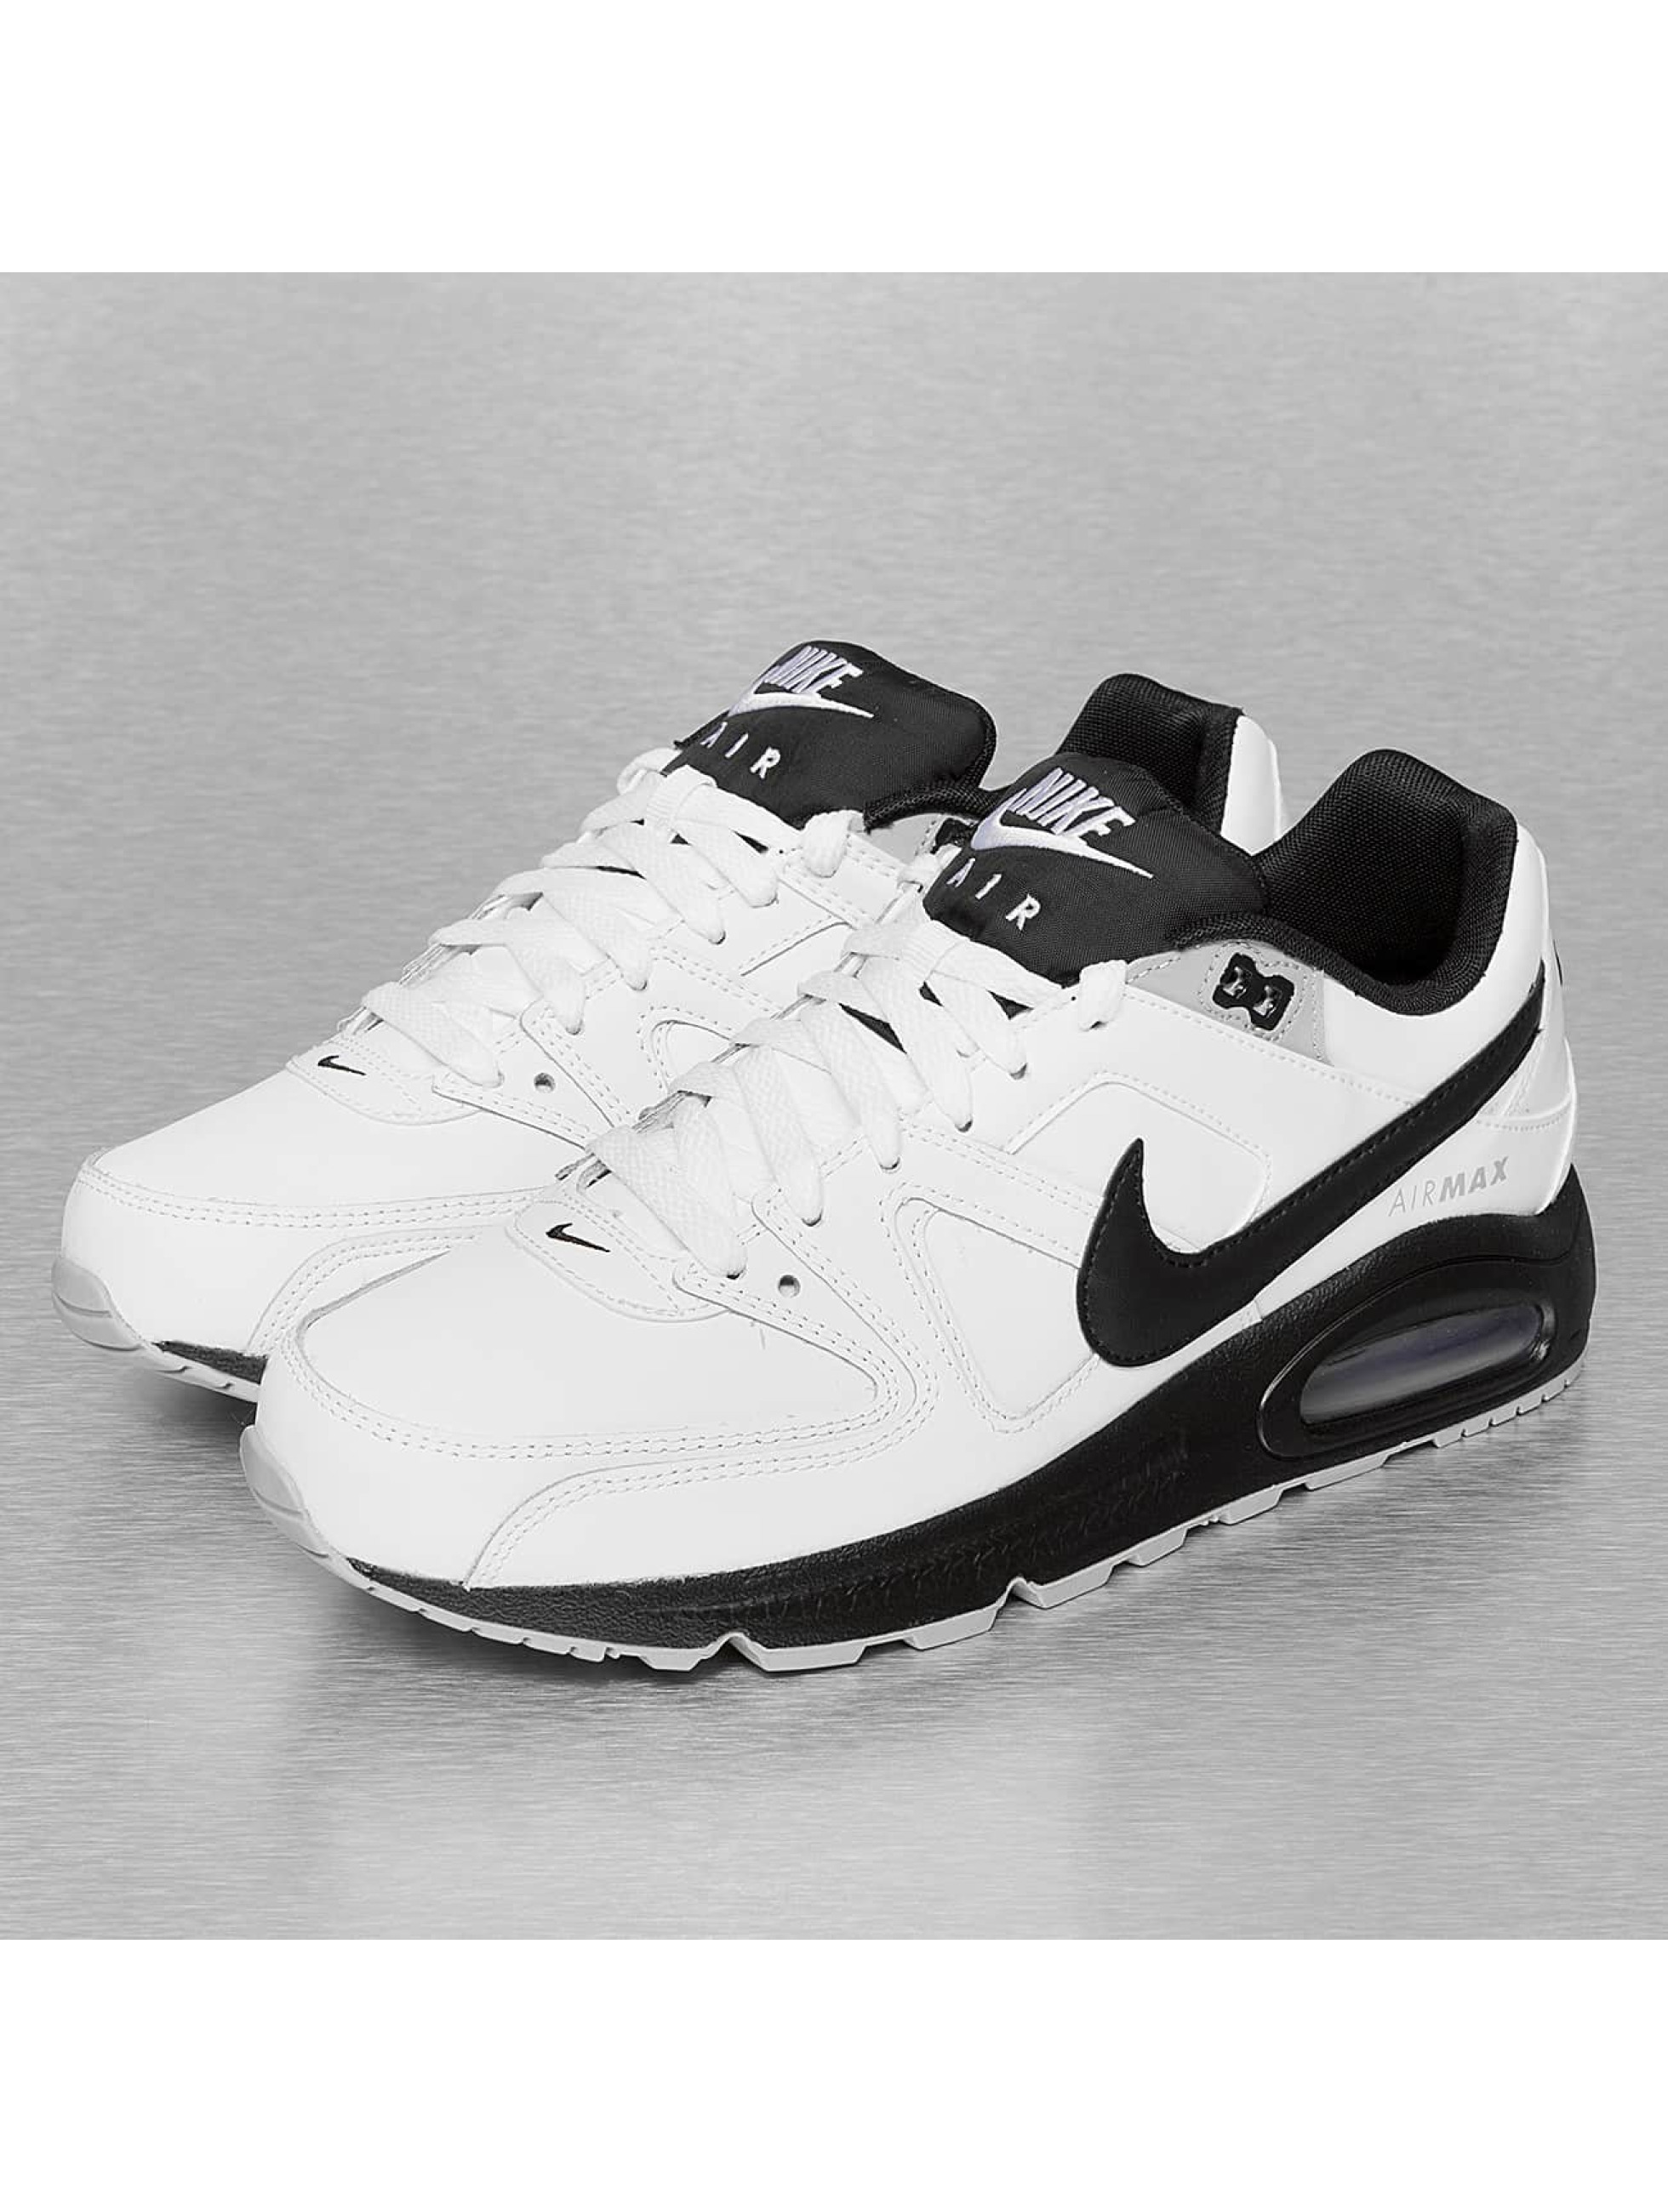 nike air max command leather pas cher dates nouvelle version nike 2012. Black Bedroom Furniture Sets. Home Design Ideas